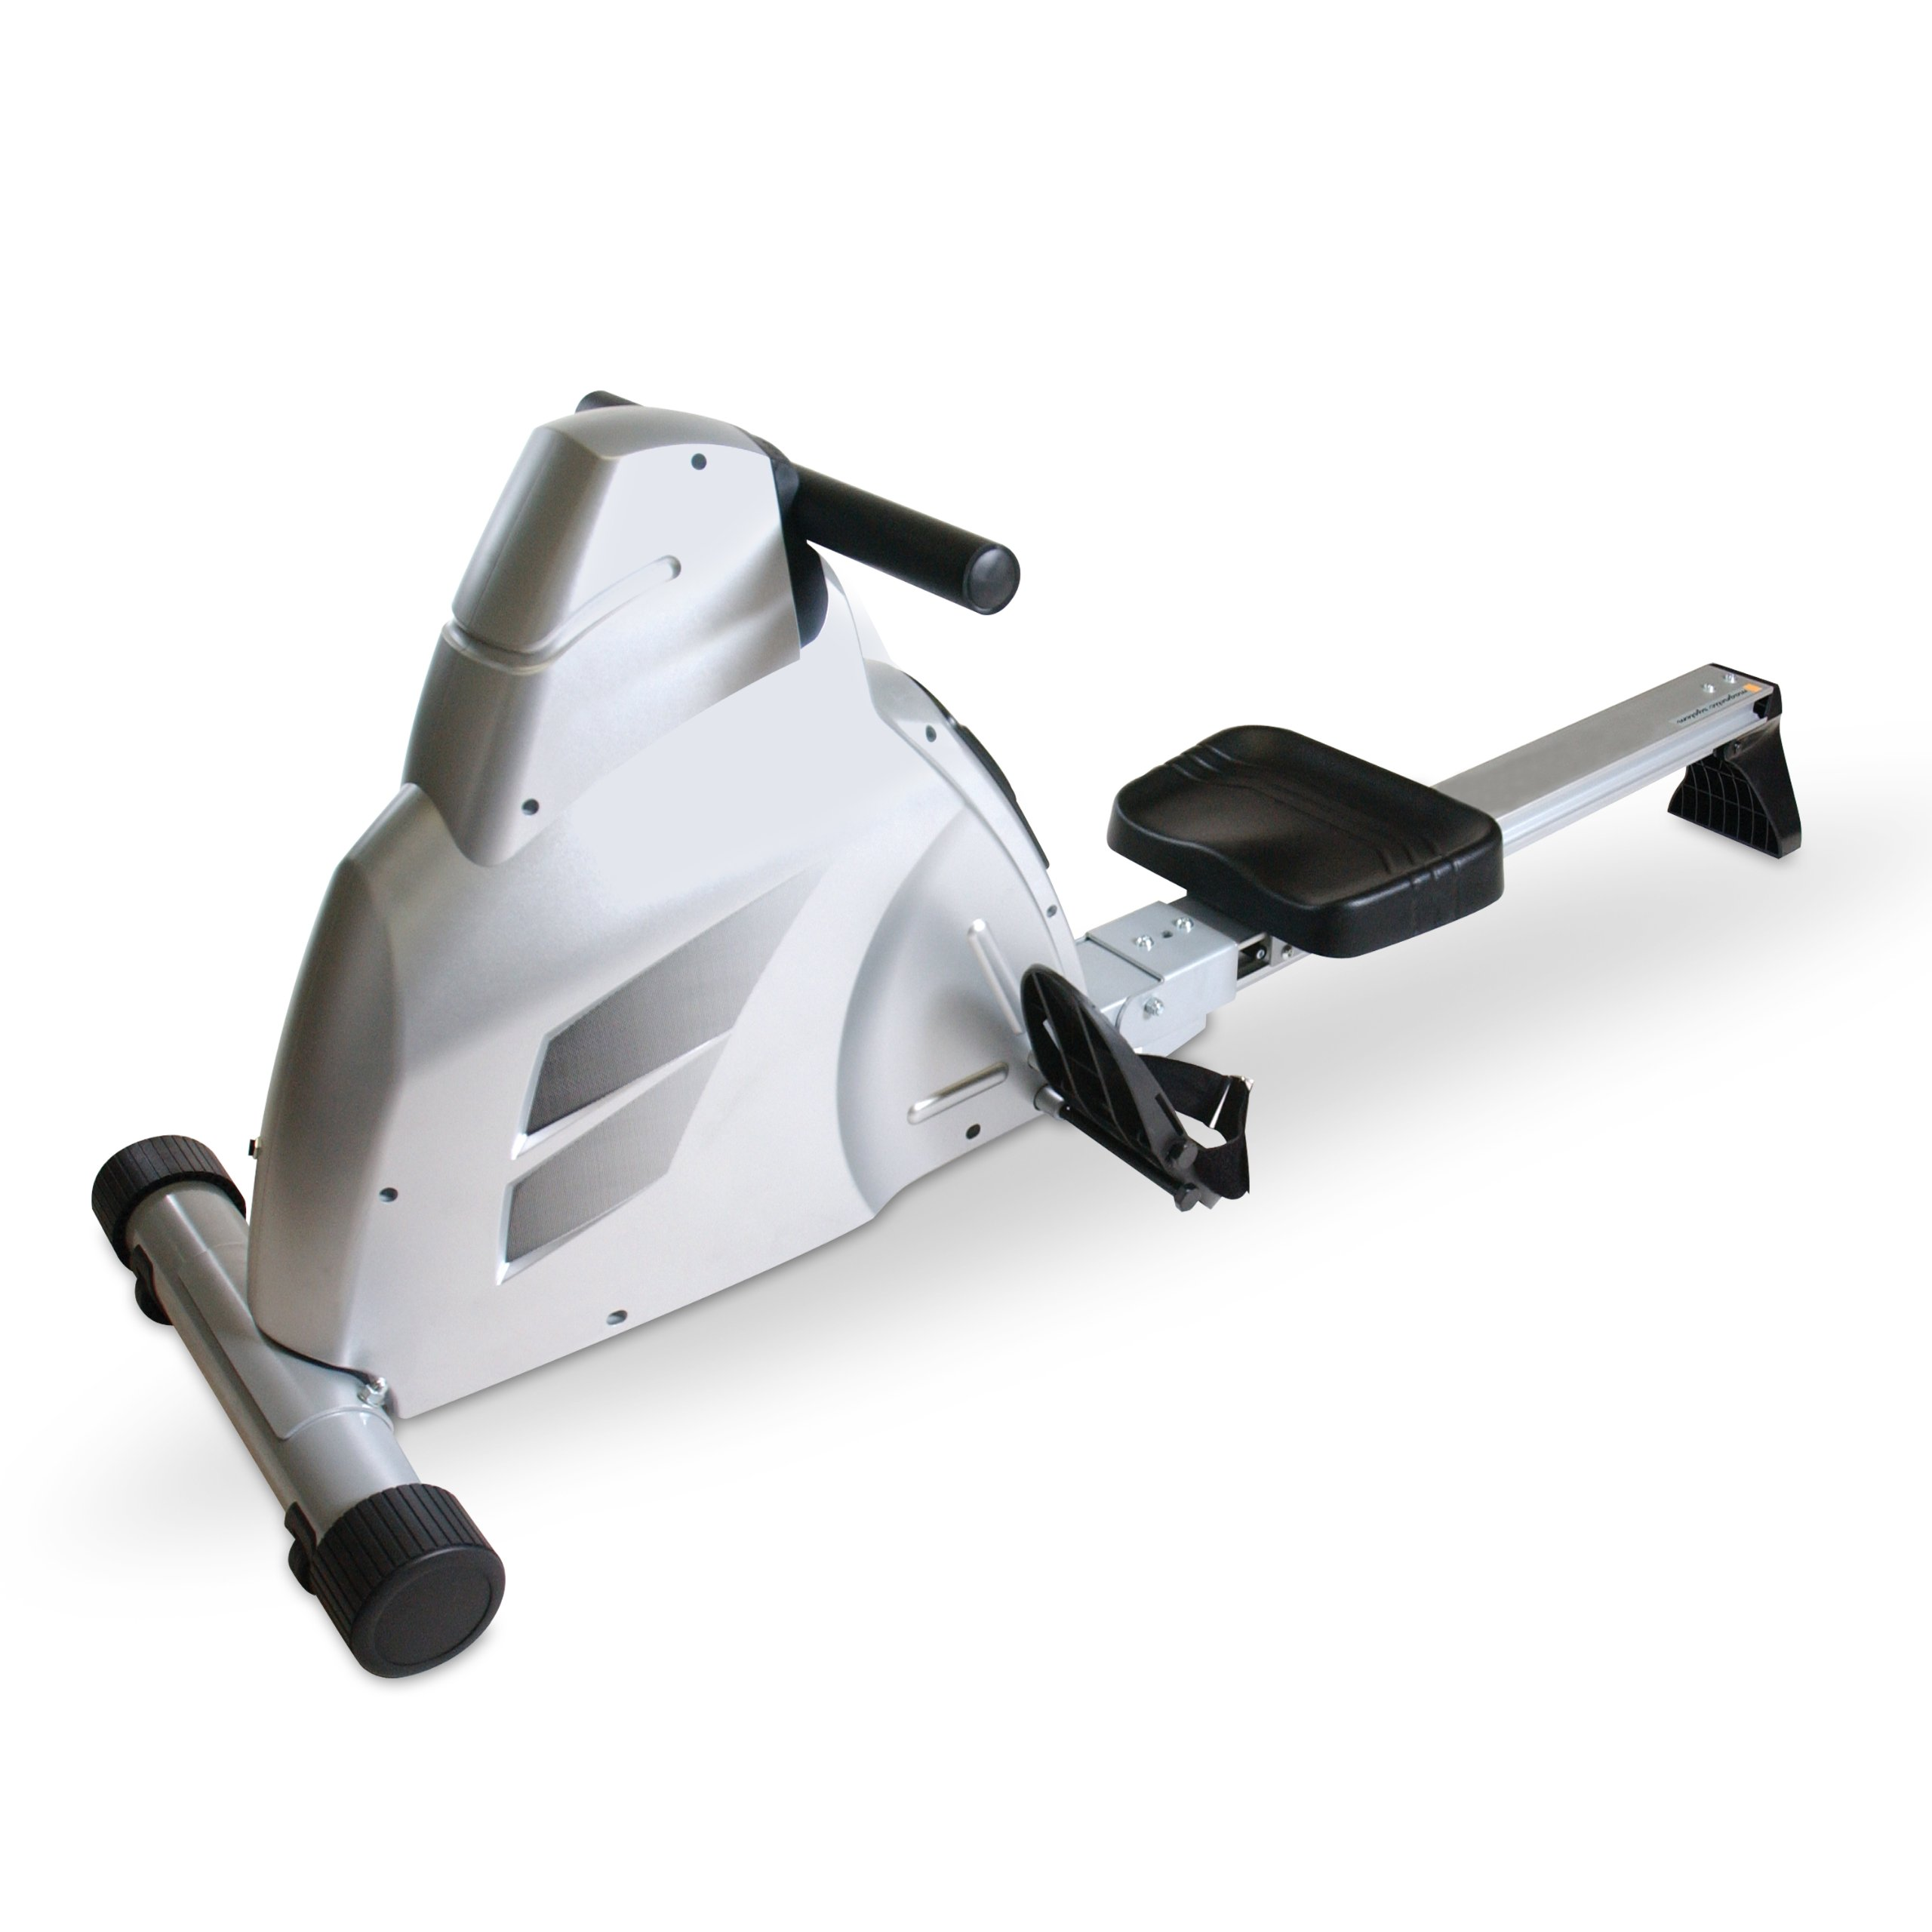 Velocity Exercise Magnetic Rower by Velocity Exercise (Image #2)